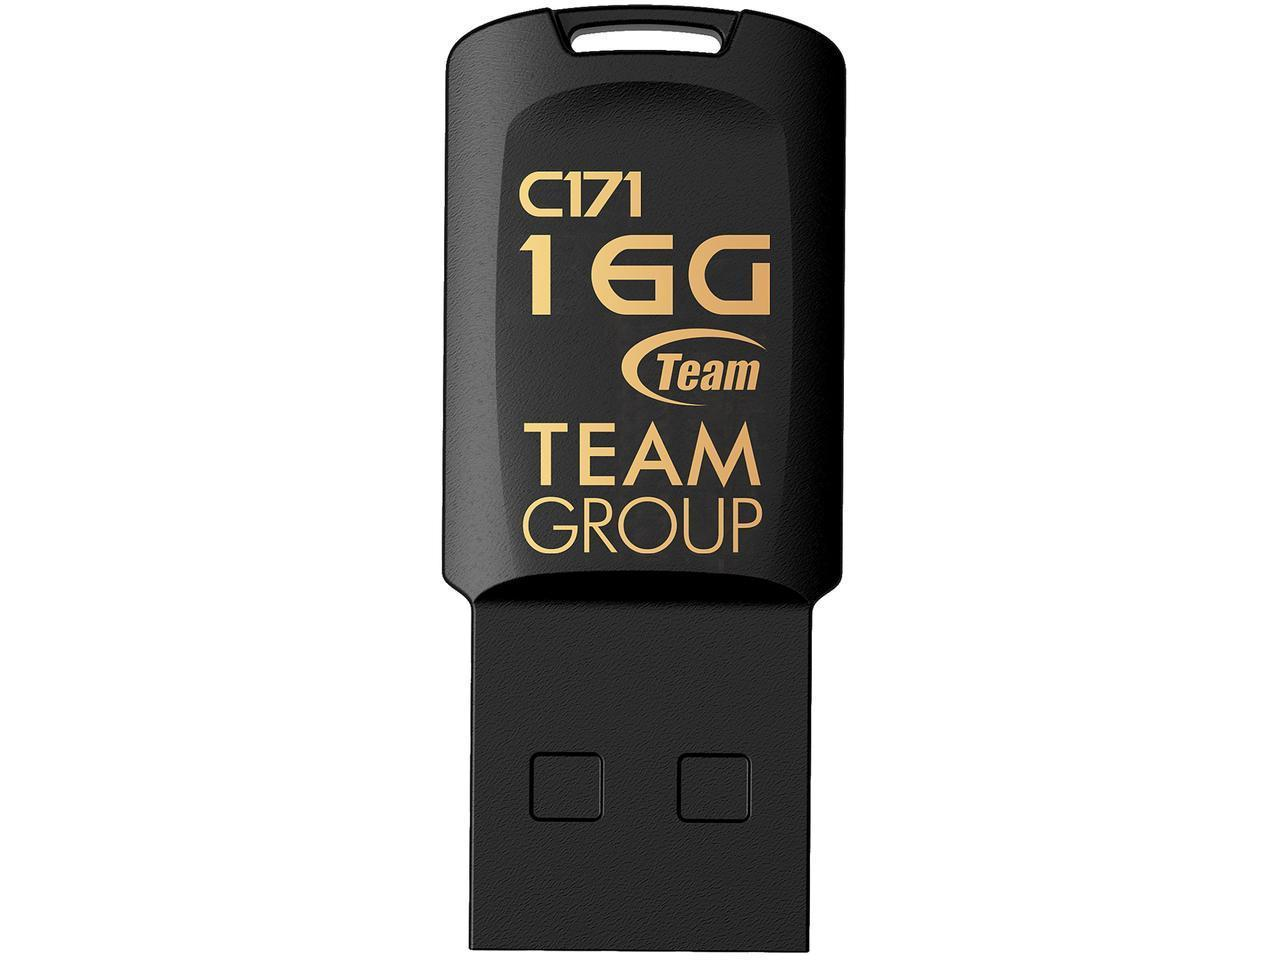 USB памет Team Group C171 16GB USB 2.0, Черен